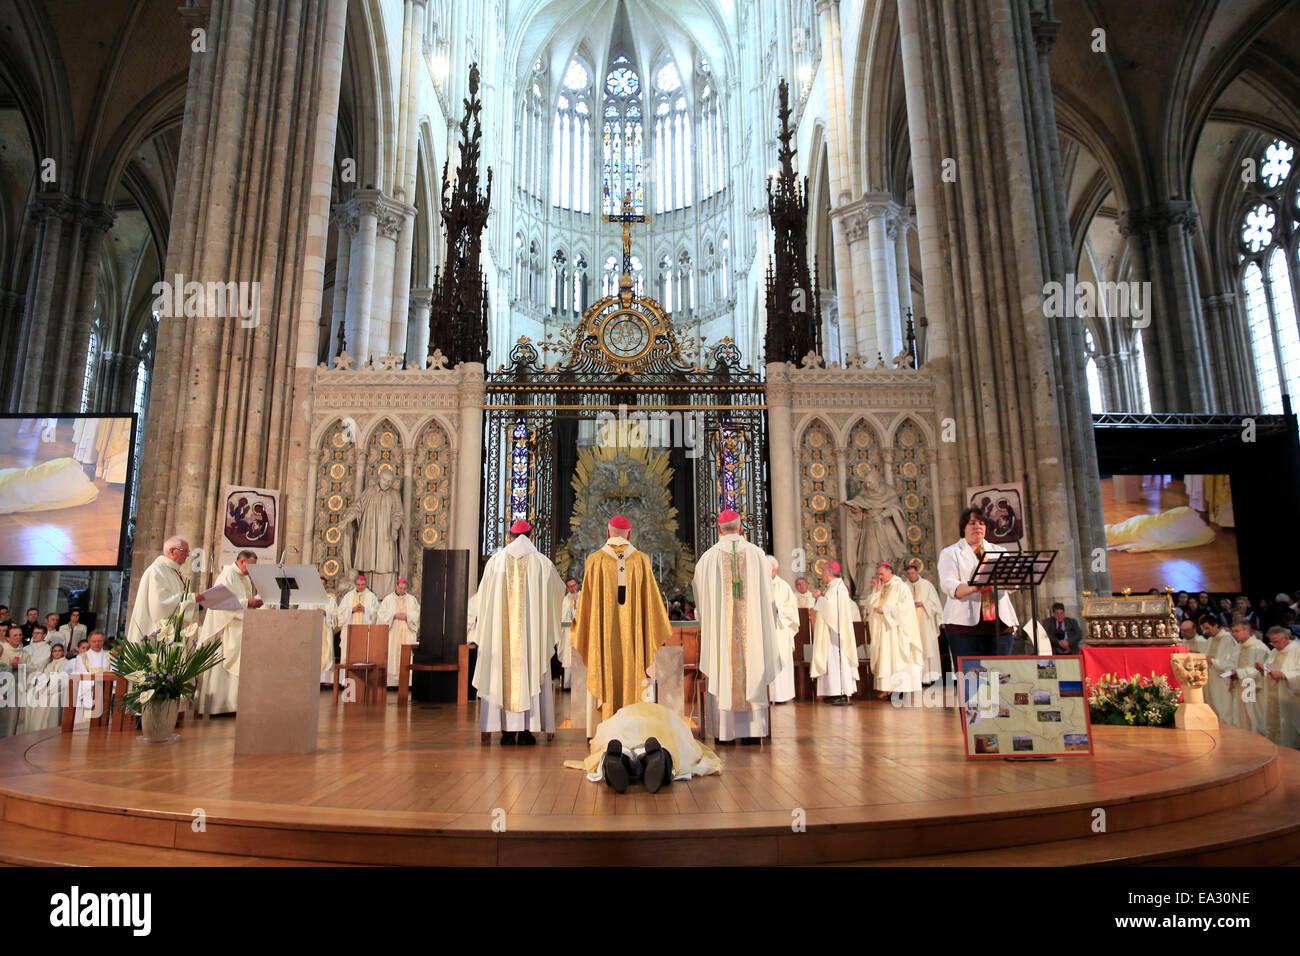 Bowing down, Litany of the Saints, Episcopal ordination, Amiens Cathedral, Somme, France, Europe - Stock Image